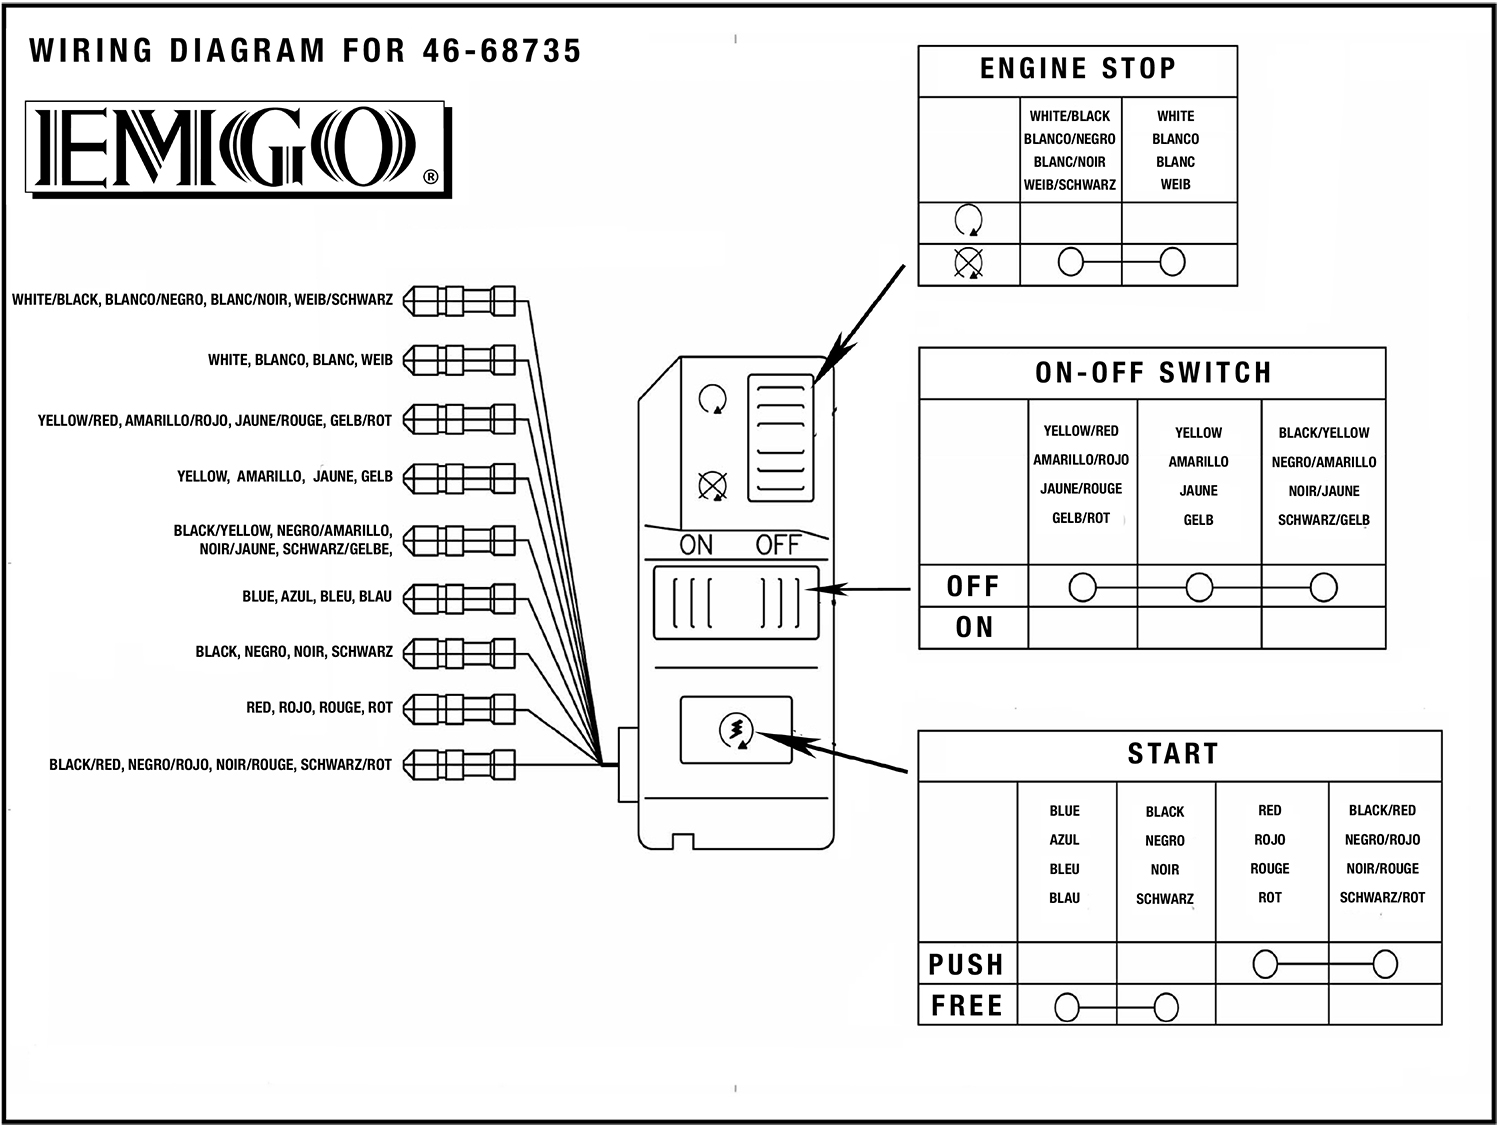 46 68735 wiring diagram emgo universal multi switch handlebar motorcycle dual sport cafe pin out right?t=1490388975 emgo universal handlebar multi switch right 46 68735 wiring wiring diagram for multiswitch at bakdesigns.co